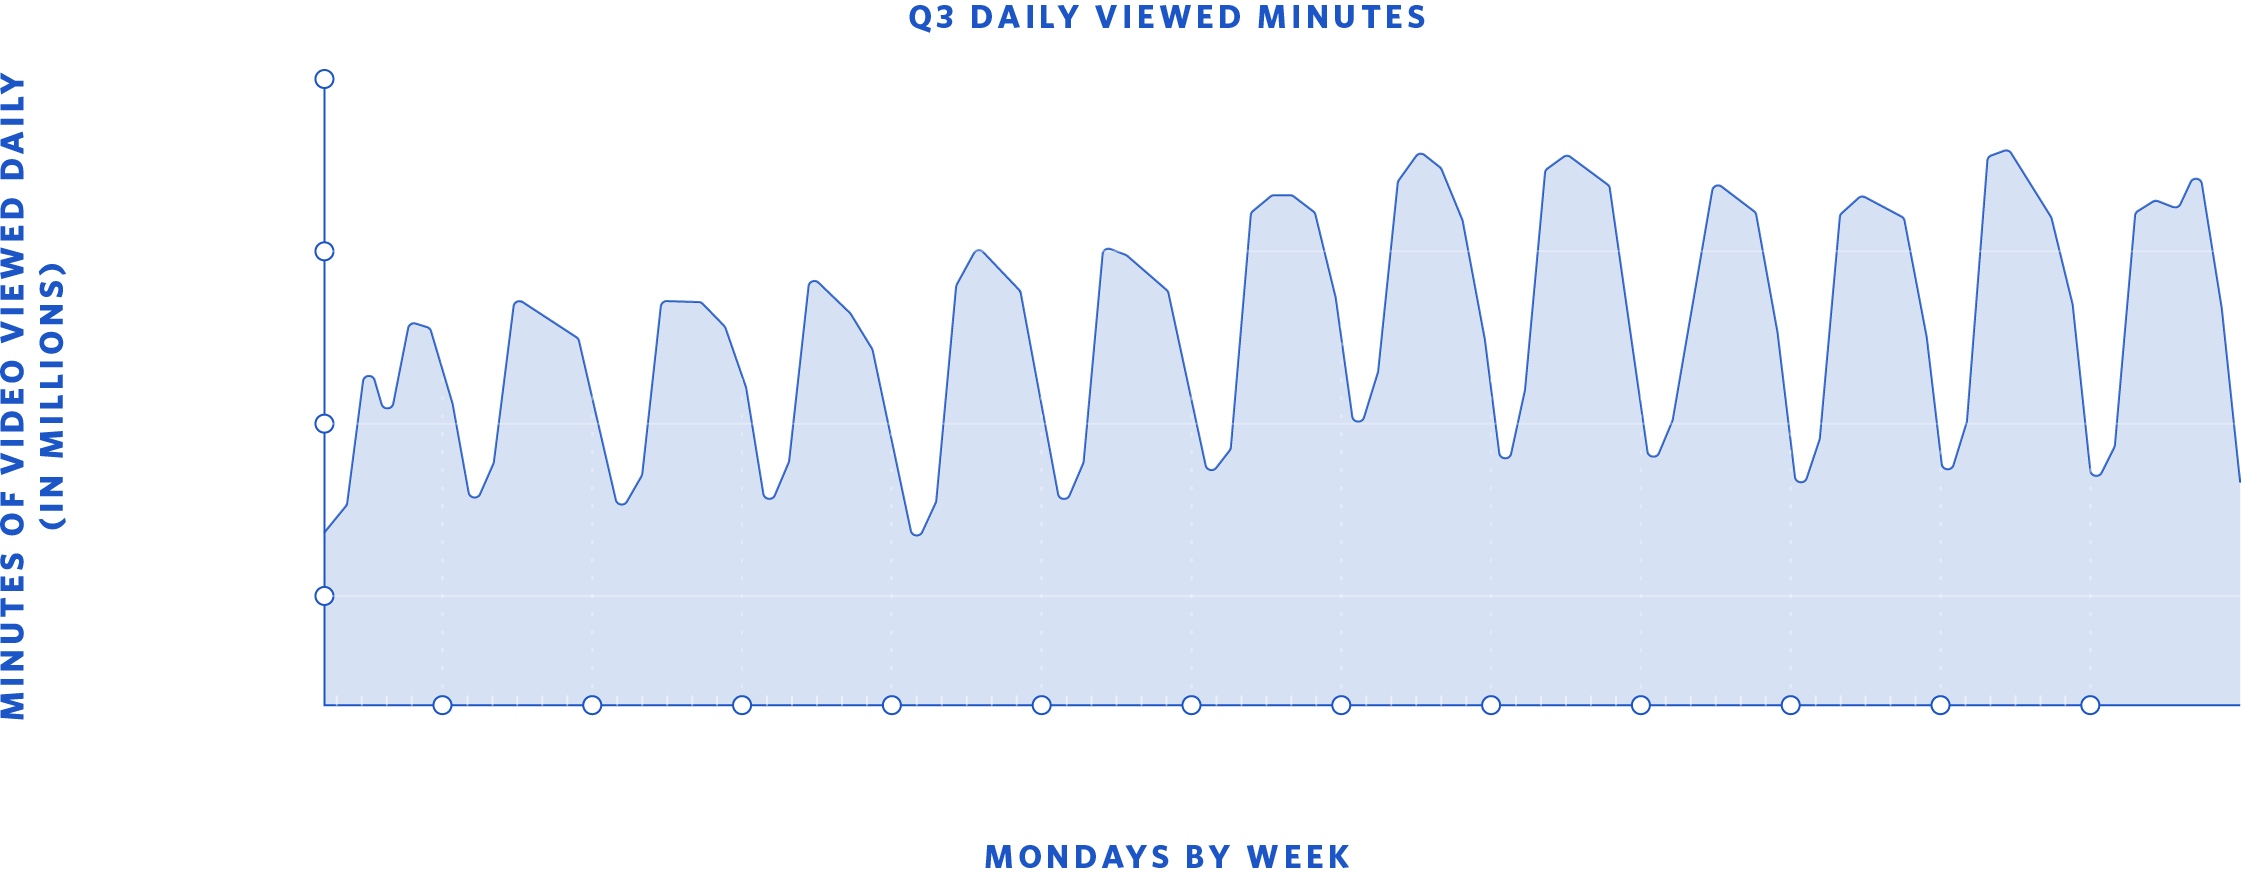 Line graph of weekly viewing trends. Showing average weekday in Q3, viewers consumed over 25M minutes of video.